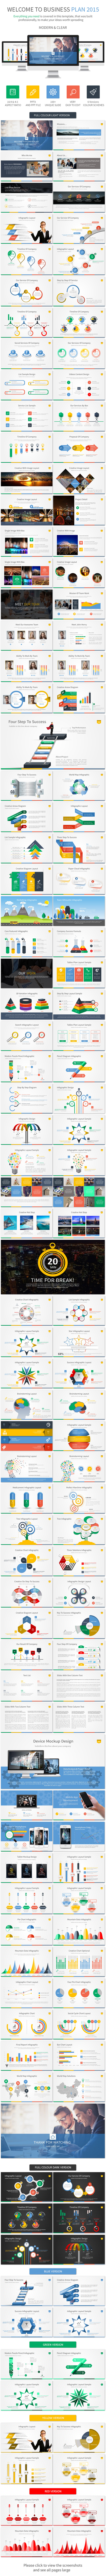 GraphicRiver Business Plan 2015 Powerpoint Template 11318924